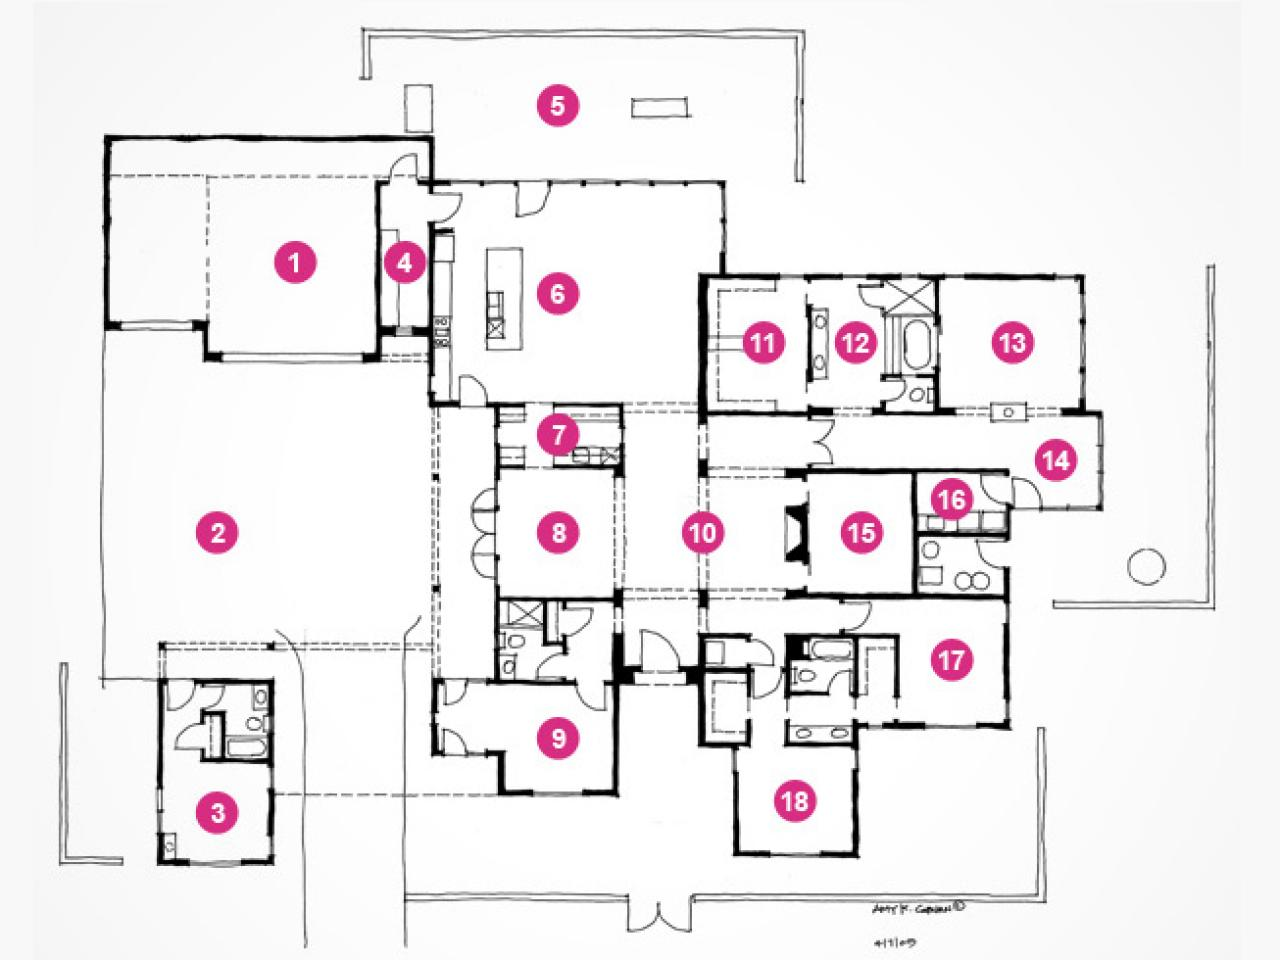 Hgtv Dream Home 2010 Floor Plan And Rendering Pictures